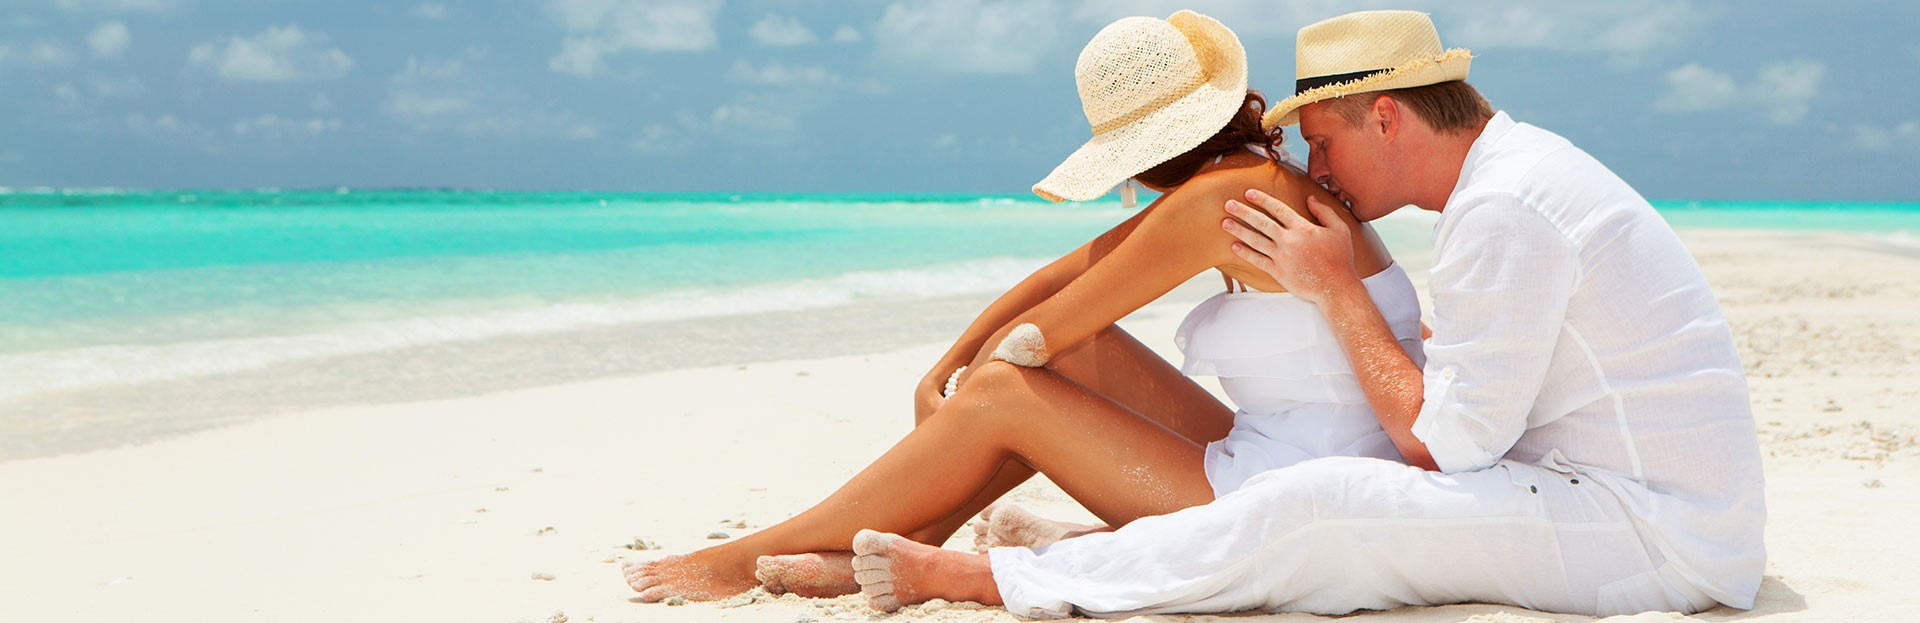 Adult Only Vacations from Edmonton - tripcentral.ca™